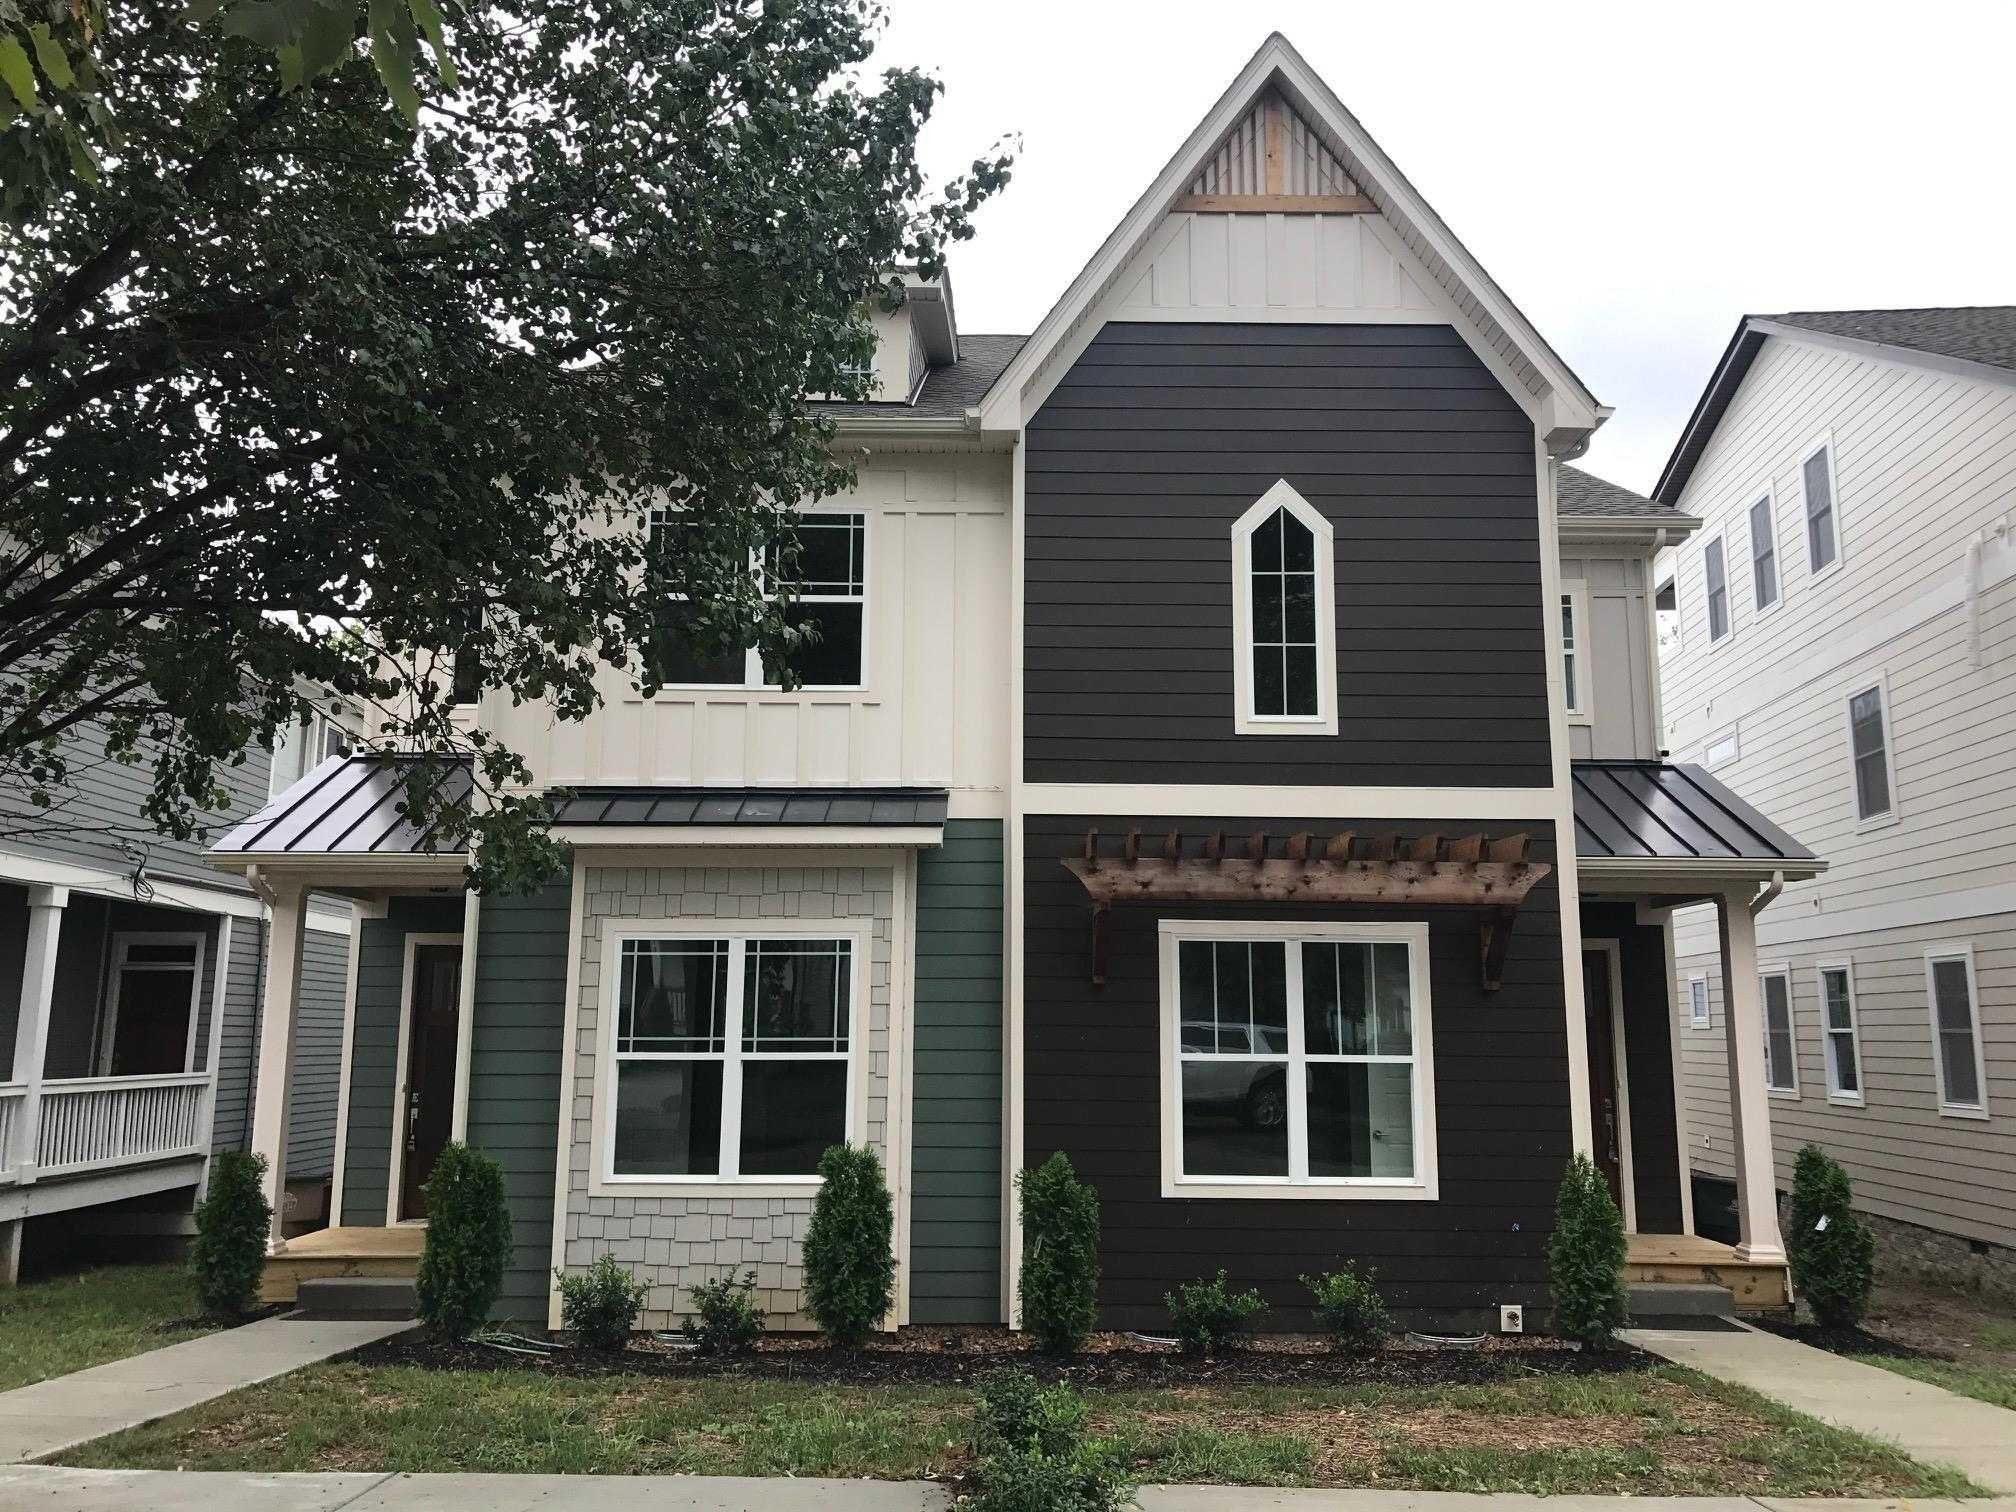 Homes for sale in West End located west of I 65 and downtown